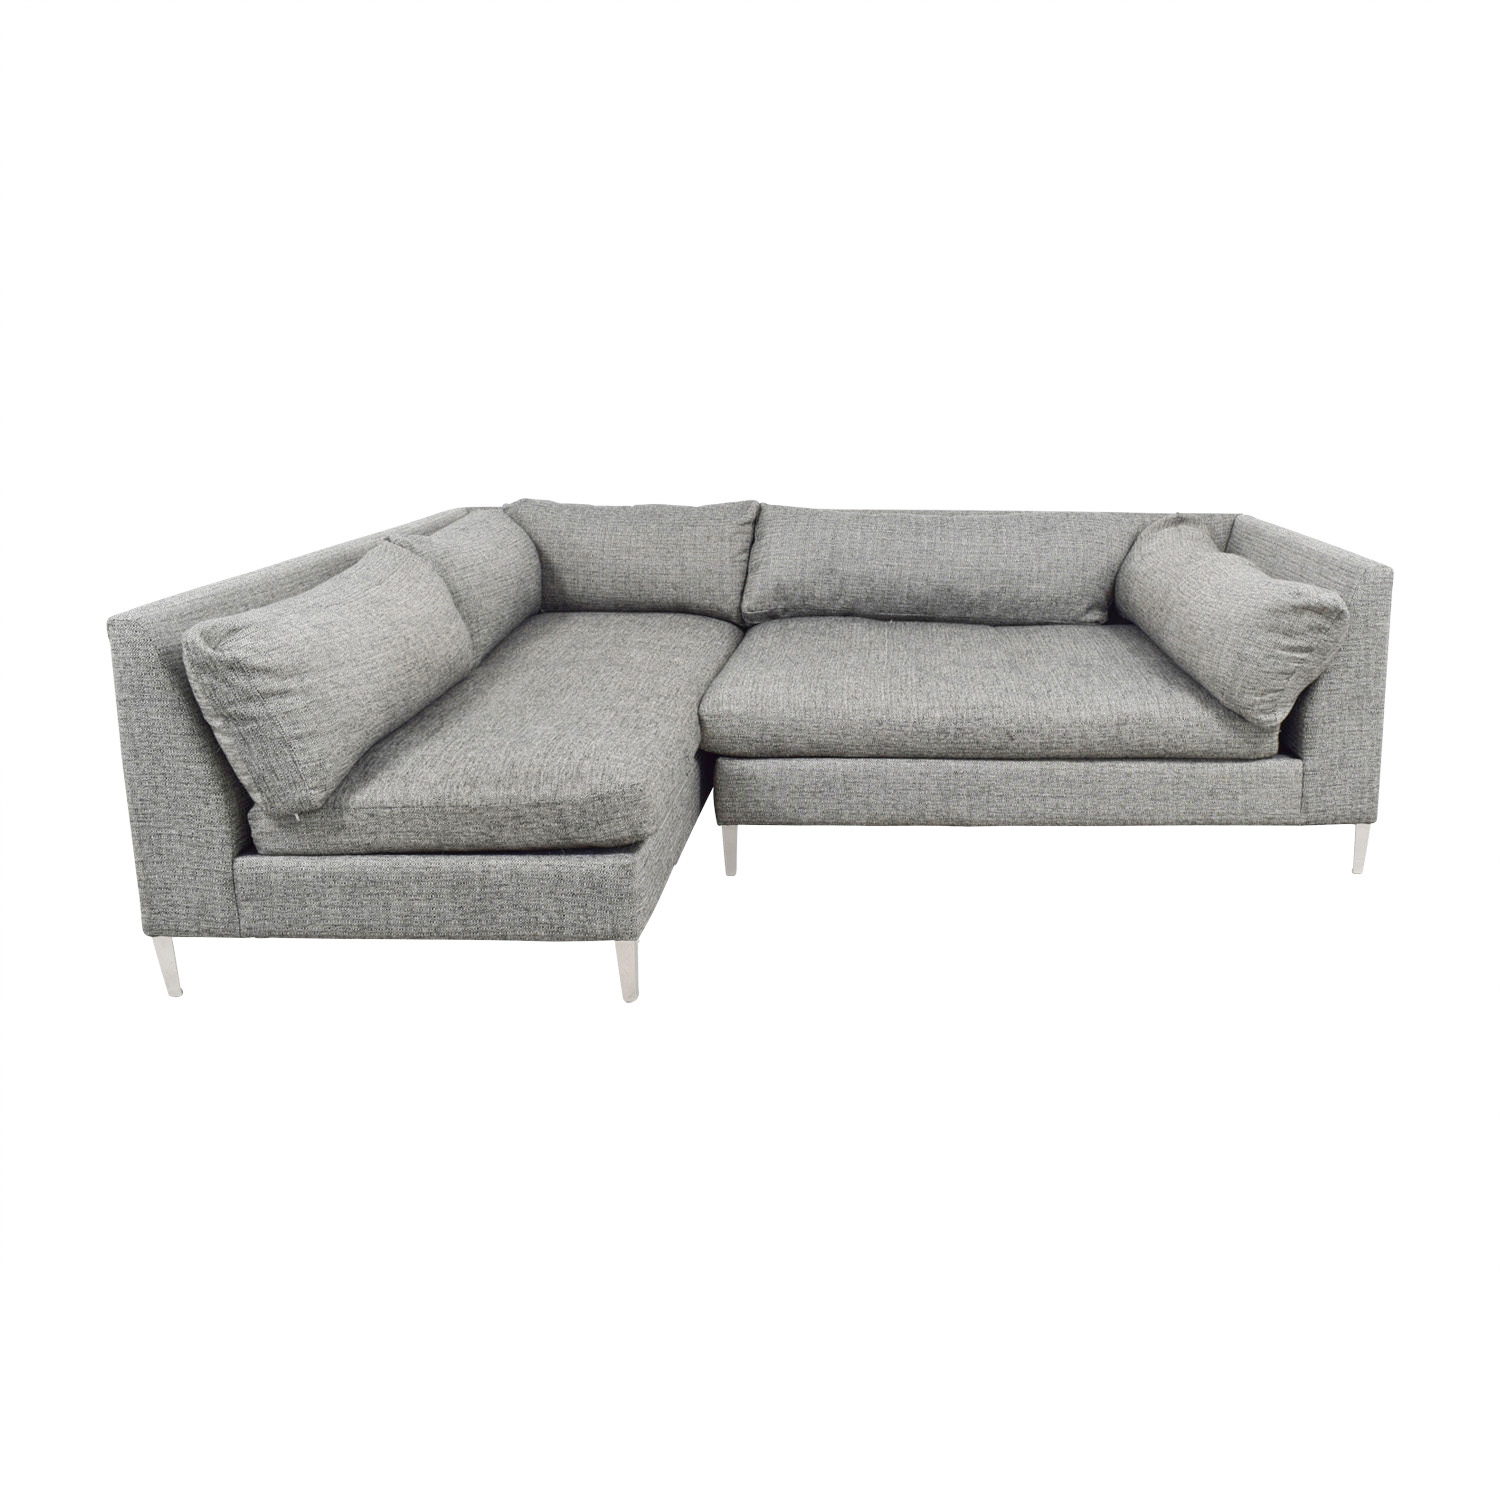 CB2 CB2 Decker Grey Sectional on sale